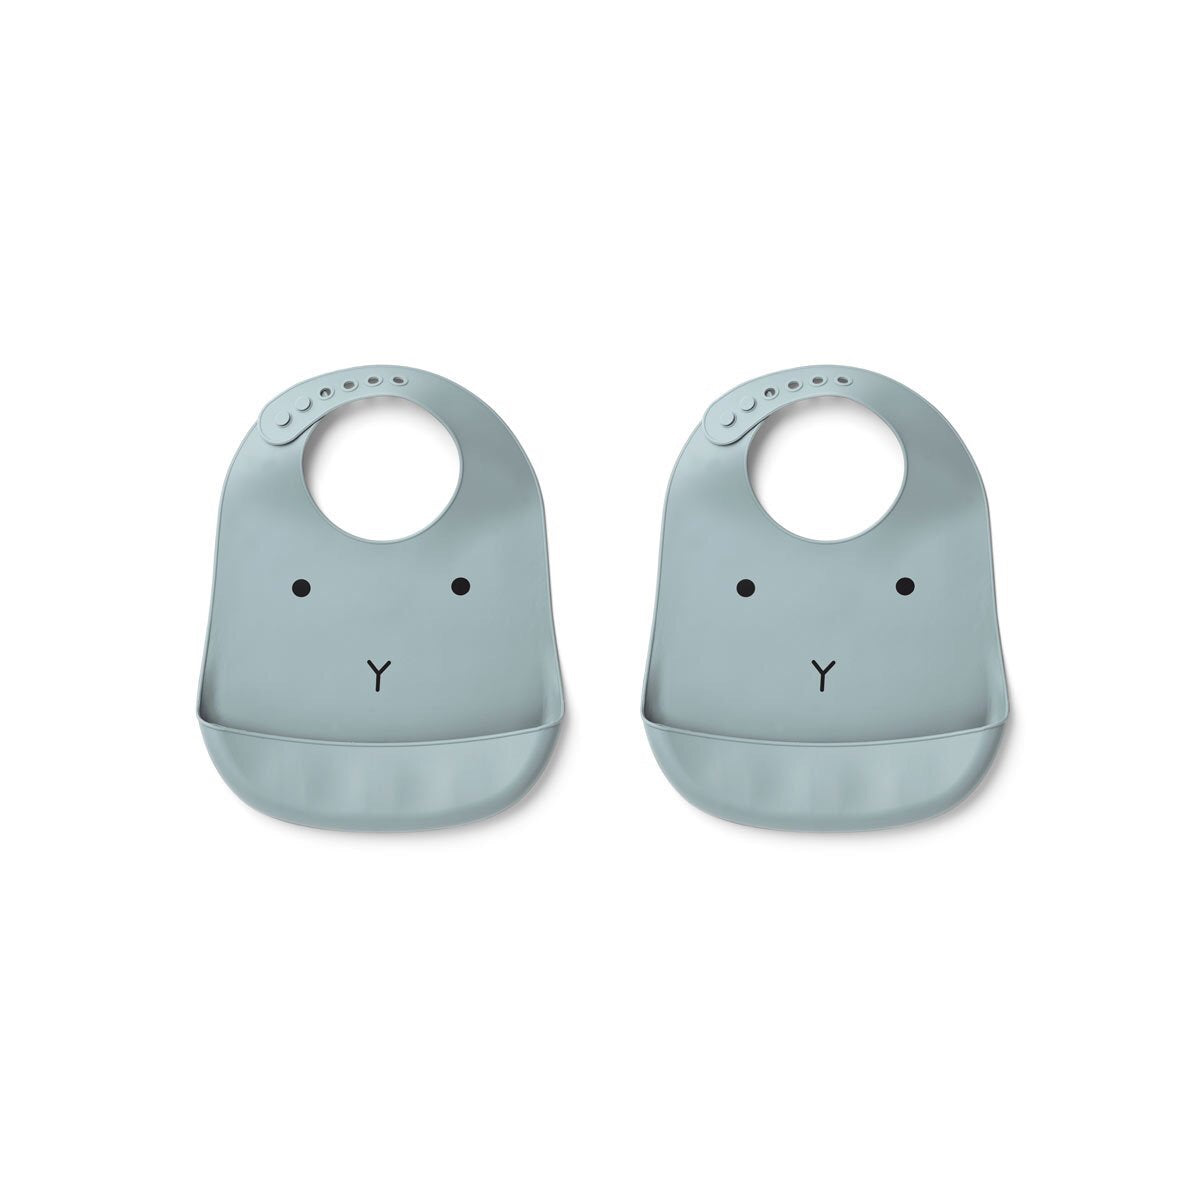 tilda silicone bib 2pack - rabbit sea blue 海藍色小兔矽膠軟圍兜(2件裝)